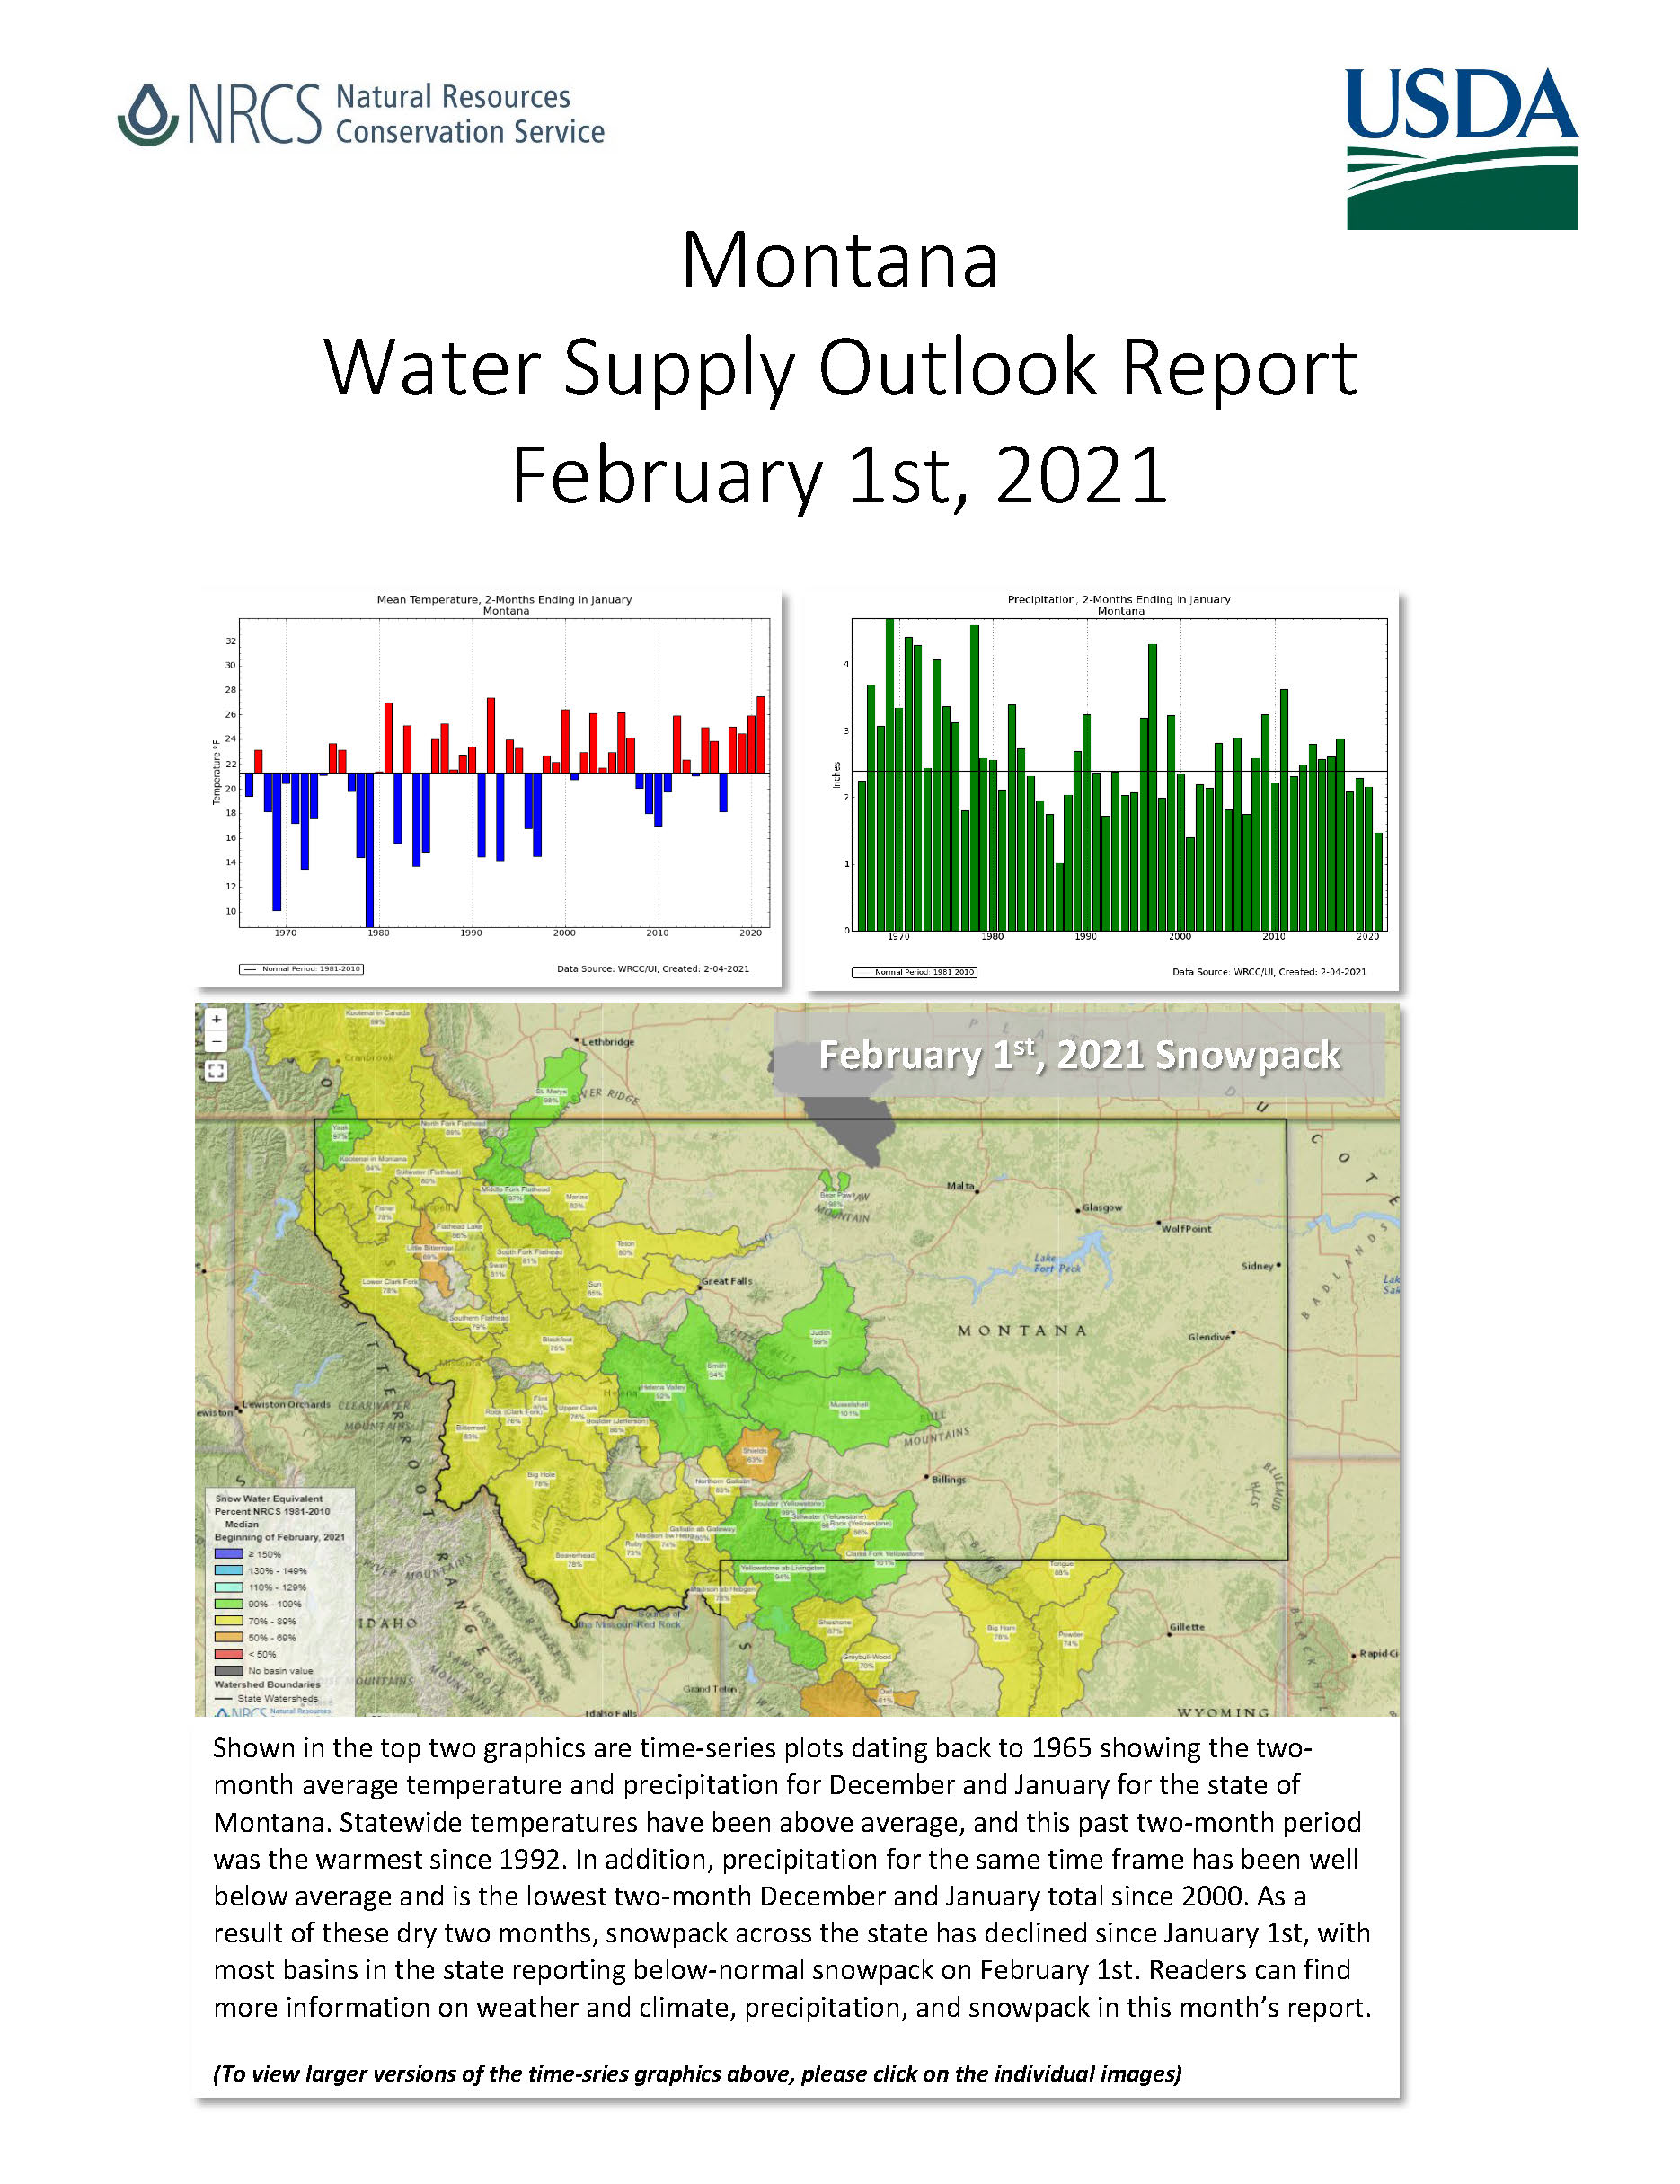 Montana Basin Outlook Report - March 1, 2018